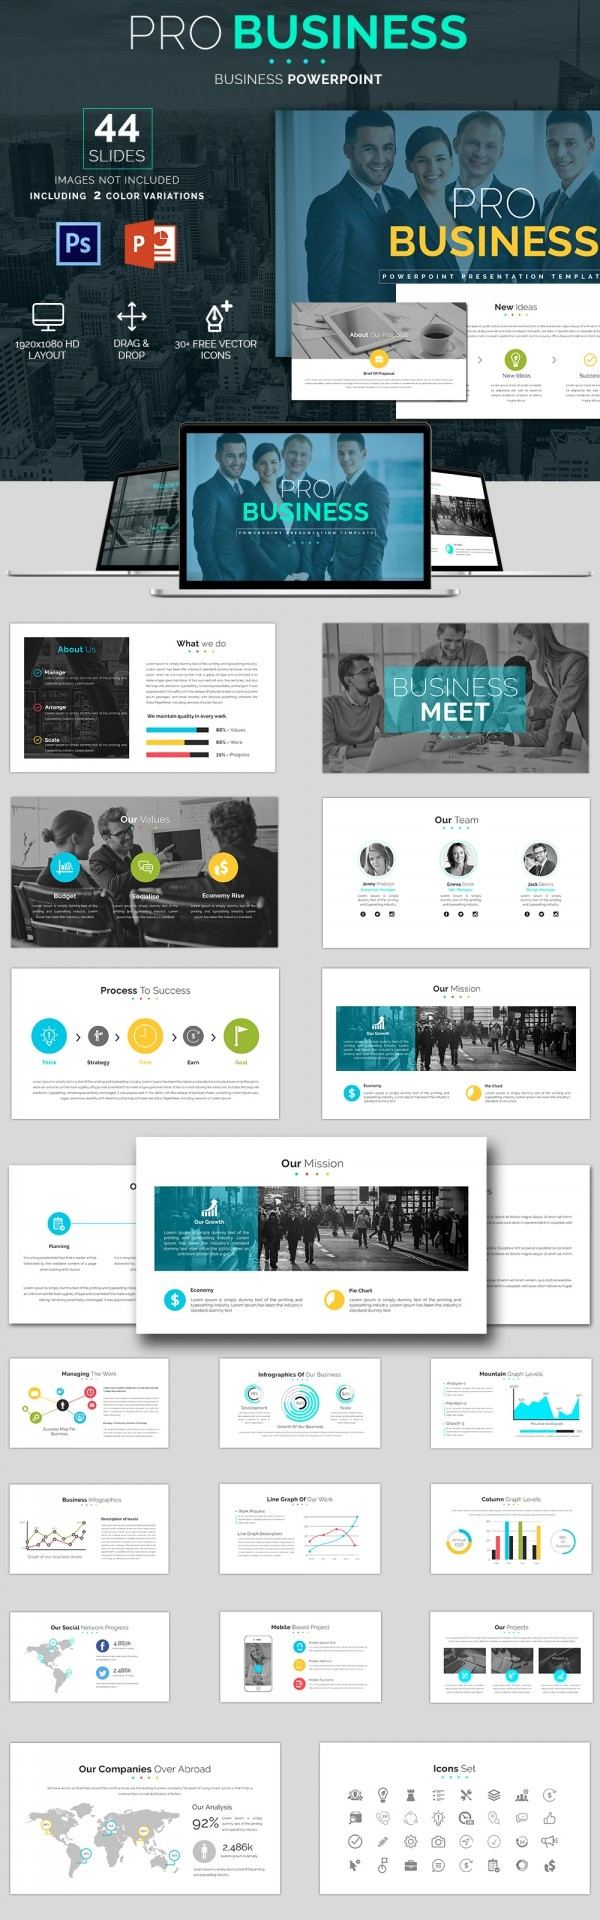 Cool business powerpoint templates news cool business powerpoint templates toneelgroepblik Choice Image